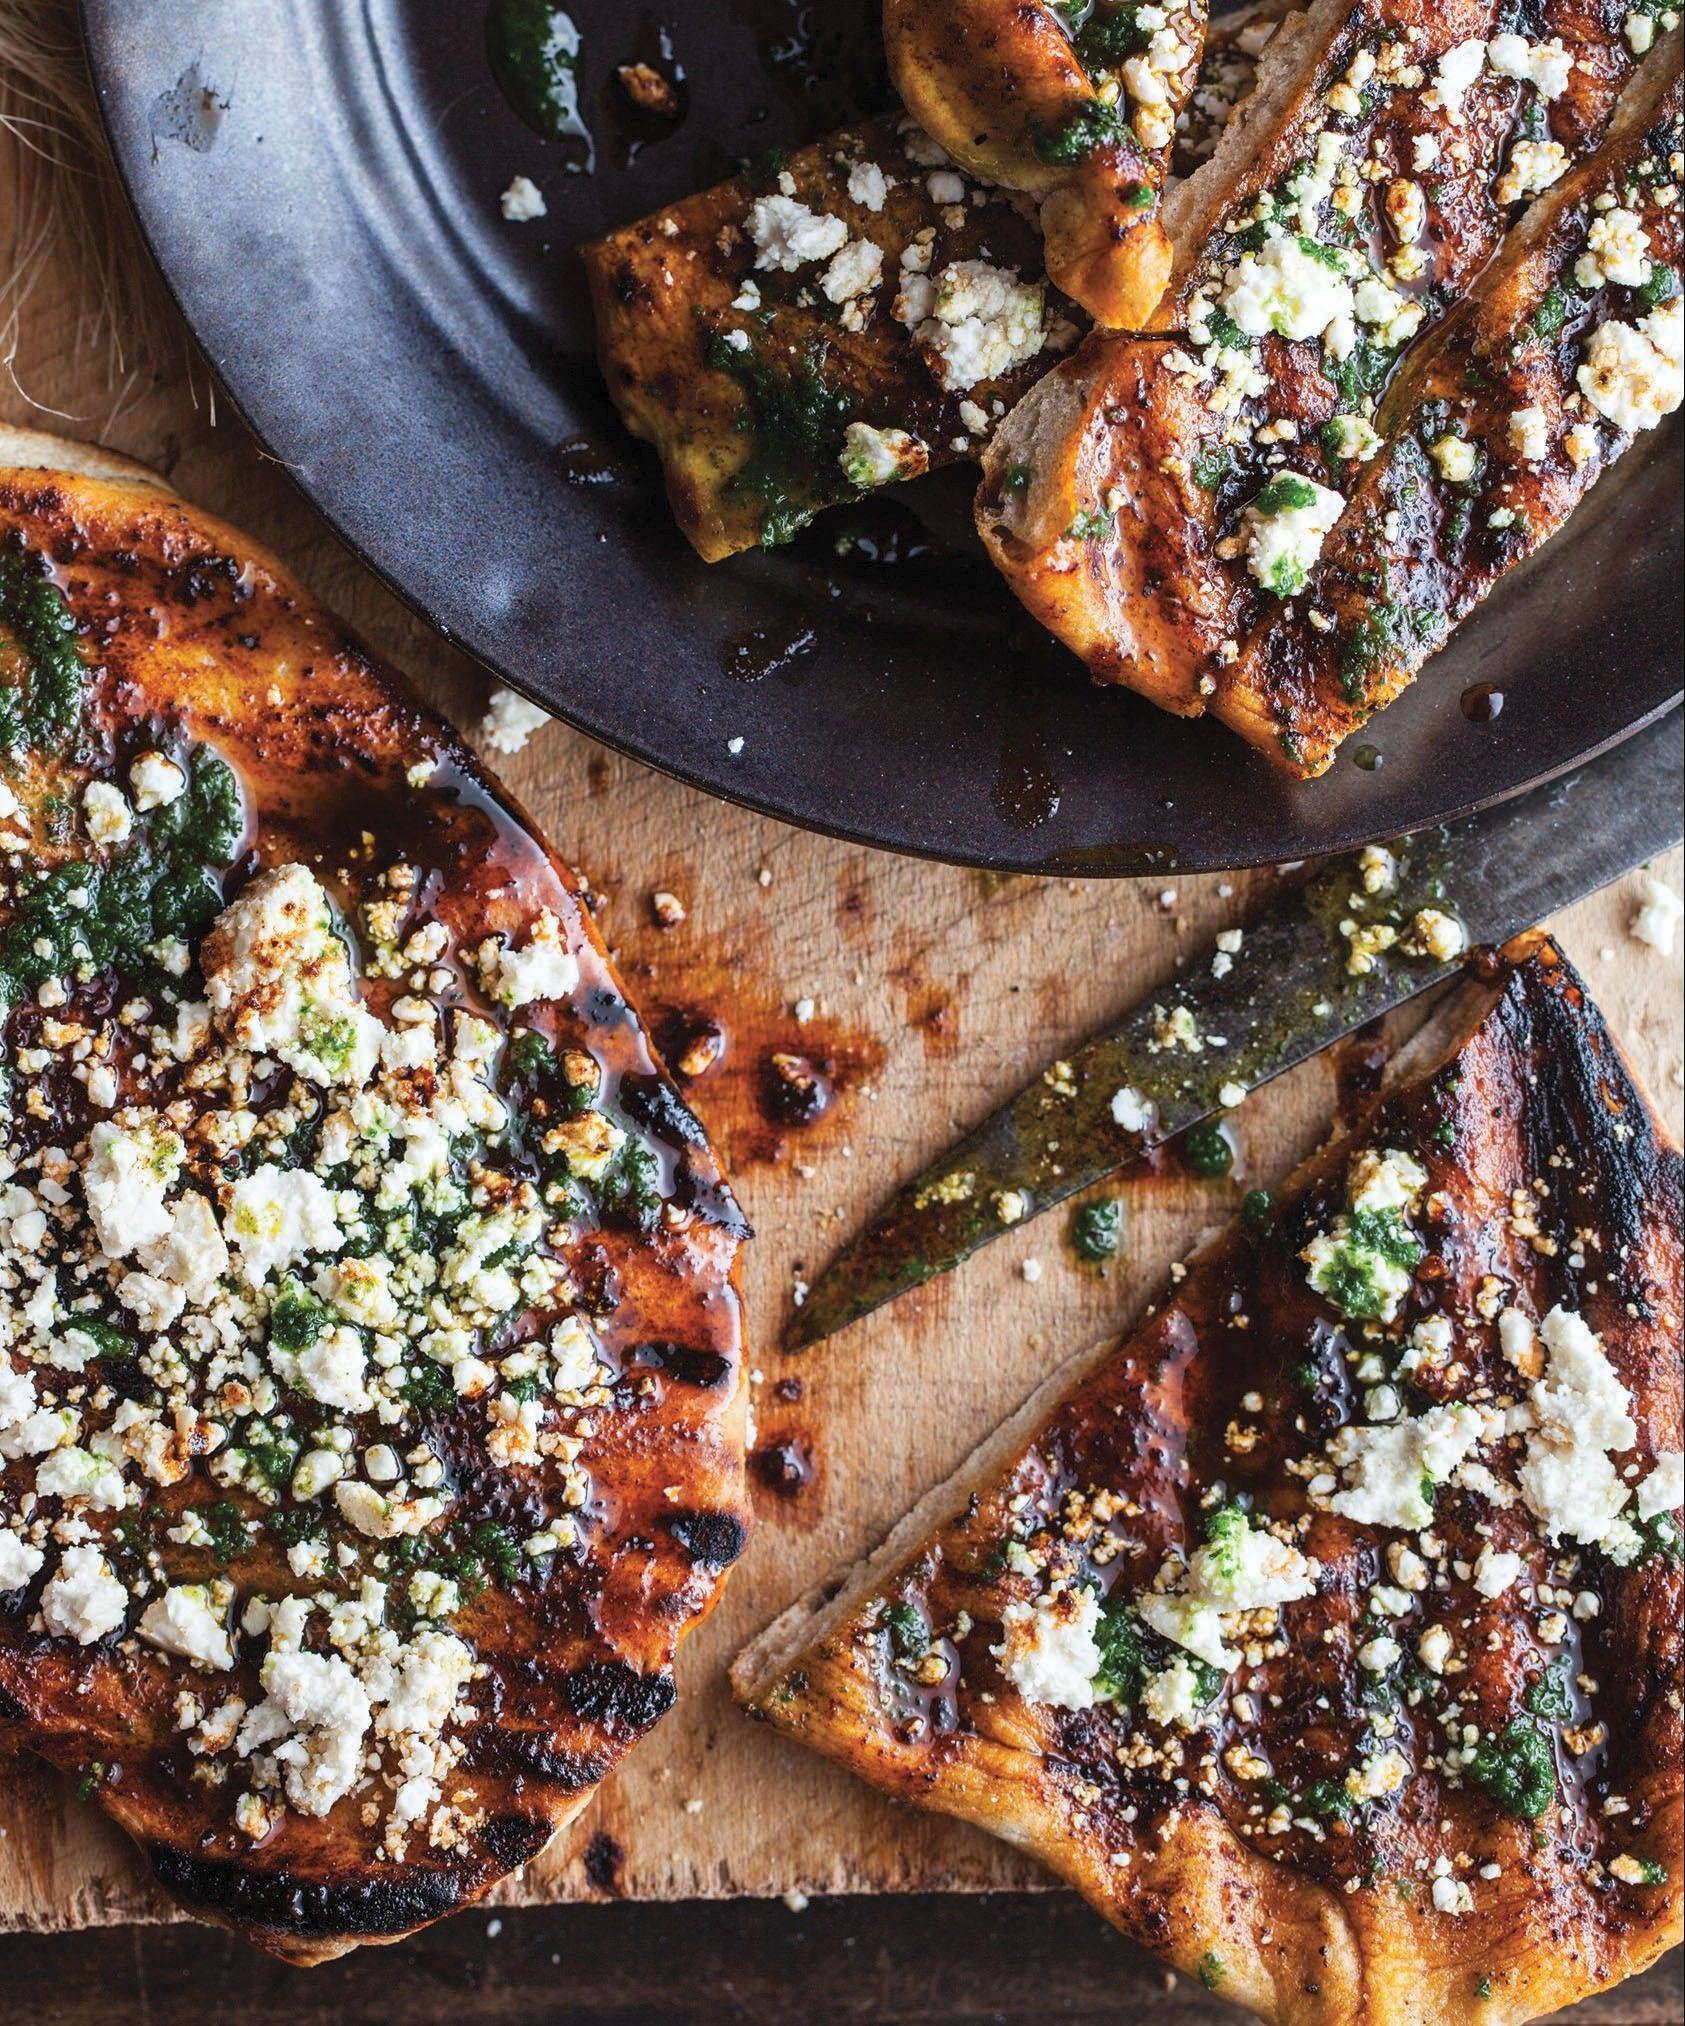 Grilled flatbread can be topped with your favorite cheese or wrapped around slices of grilled steak and vegetables.